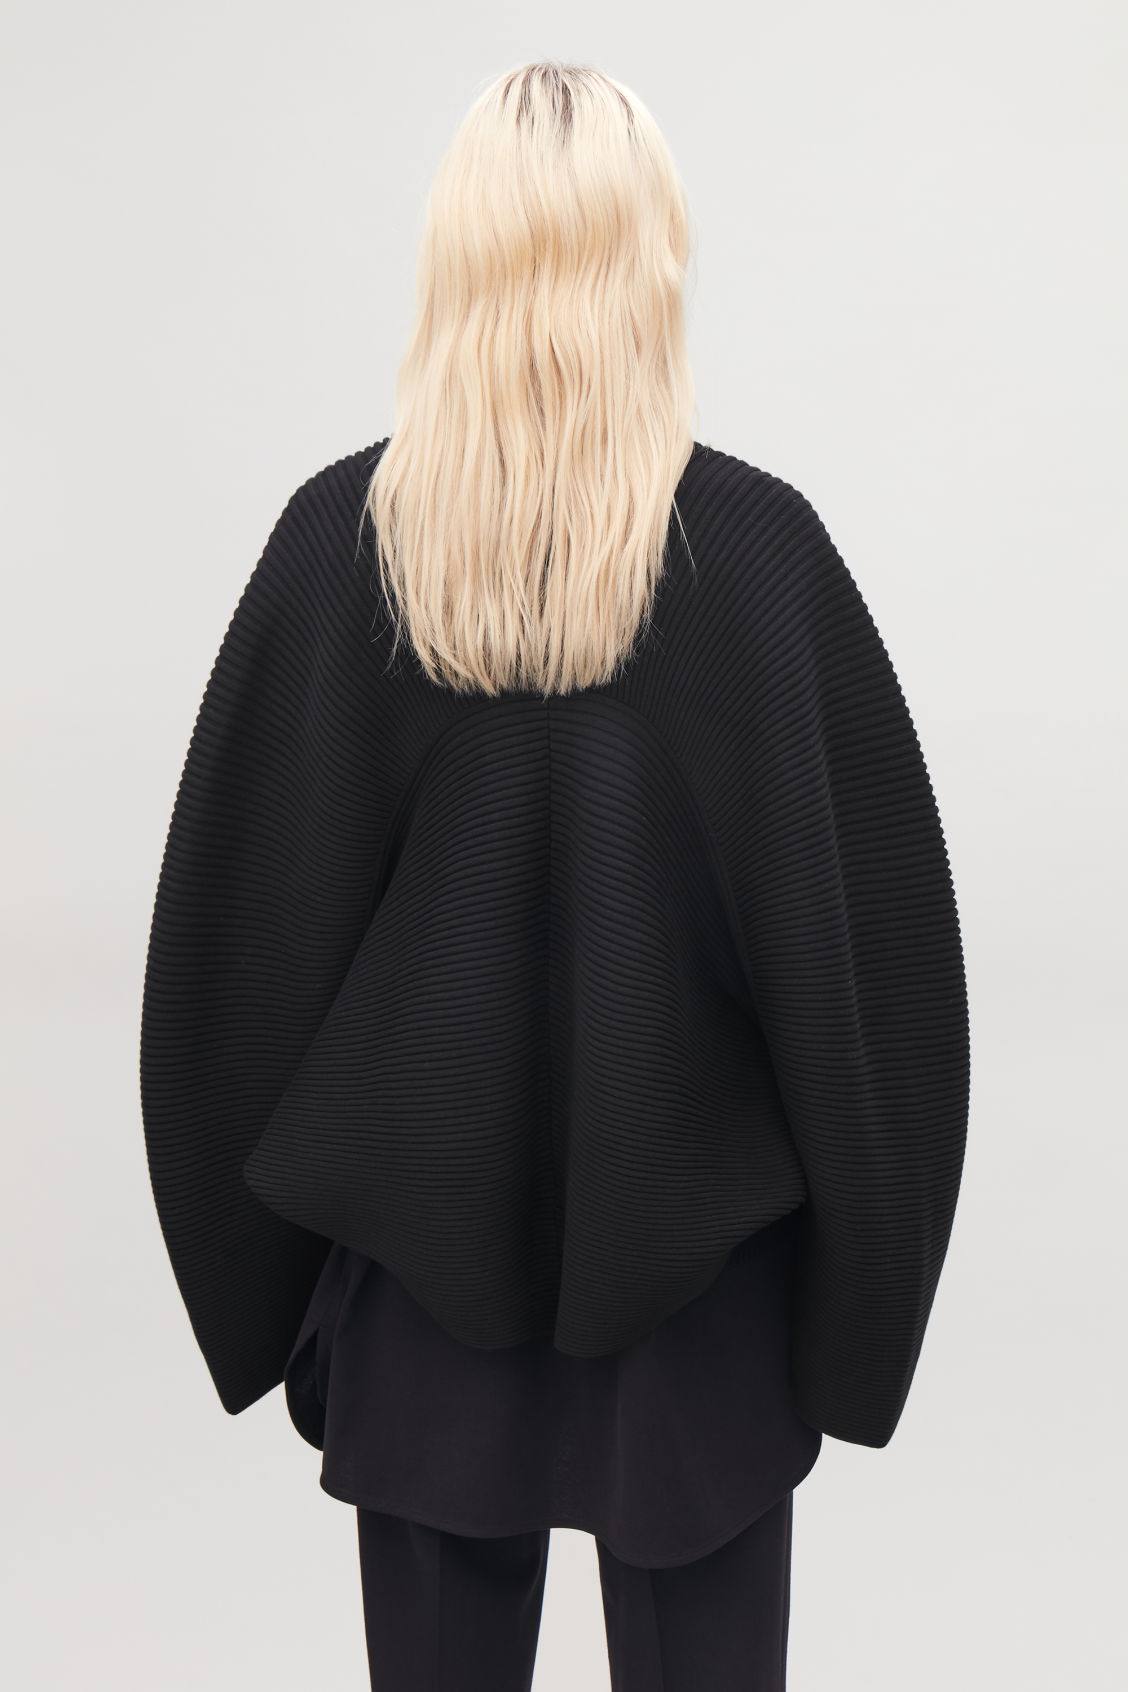 Detailed image of Cos cocoon ribbed cape in black